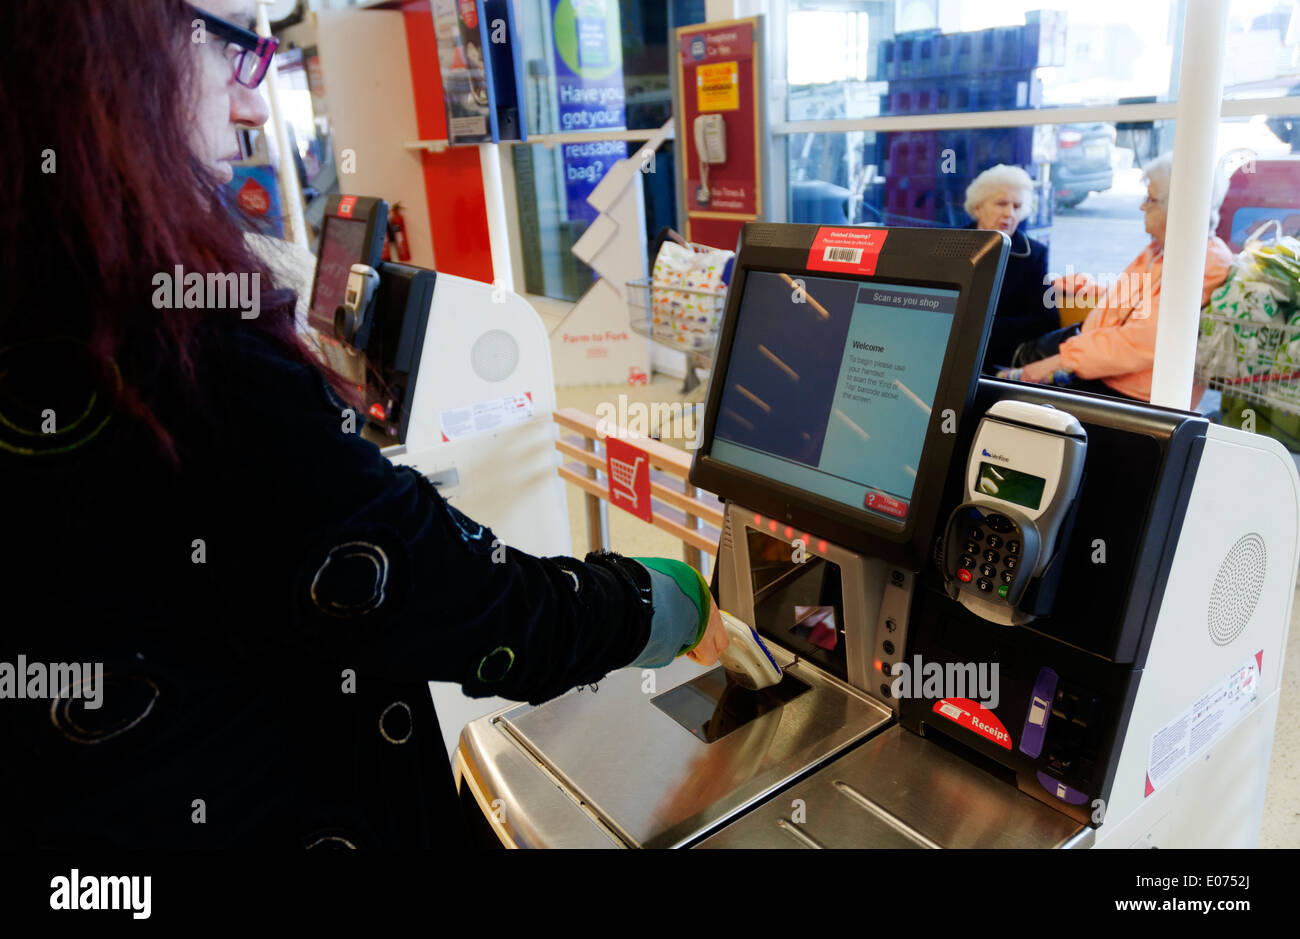 A young woman using the Scan as you Shop till in Tesco supermarket - Stock Image